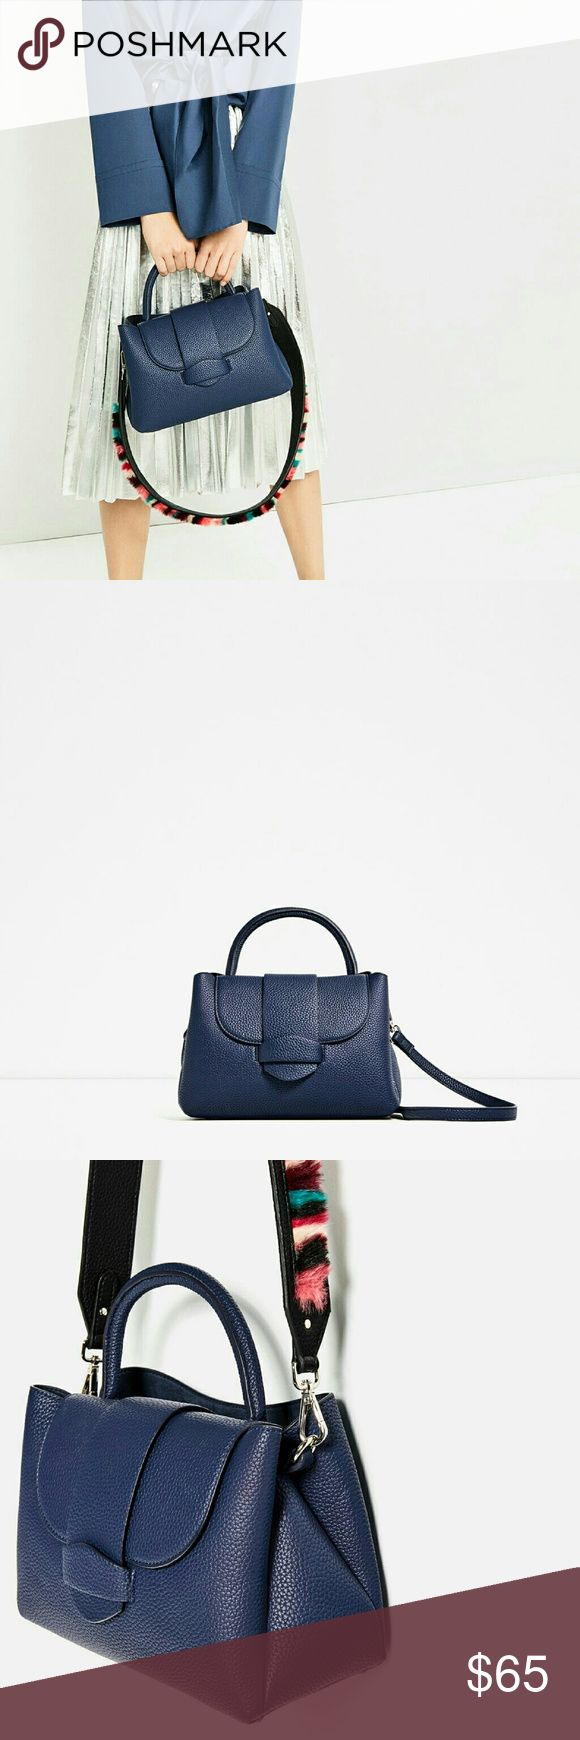 "Zara bag (8061) New with tag. outer shell Lining 100% polyester. Blue mini city bag. Detachable multicolor shoulder strap with synthetic fur. Handle. Magnet Fastening. measurements 19 x 27 x 12 cm/ 7.4 x 10.6 x 4.7"" Zara Bags Crossbody Bags"